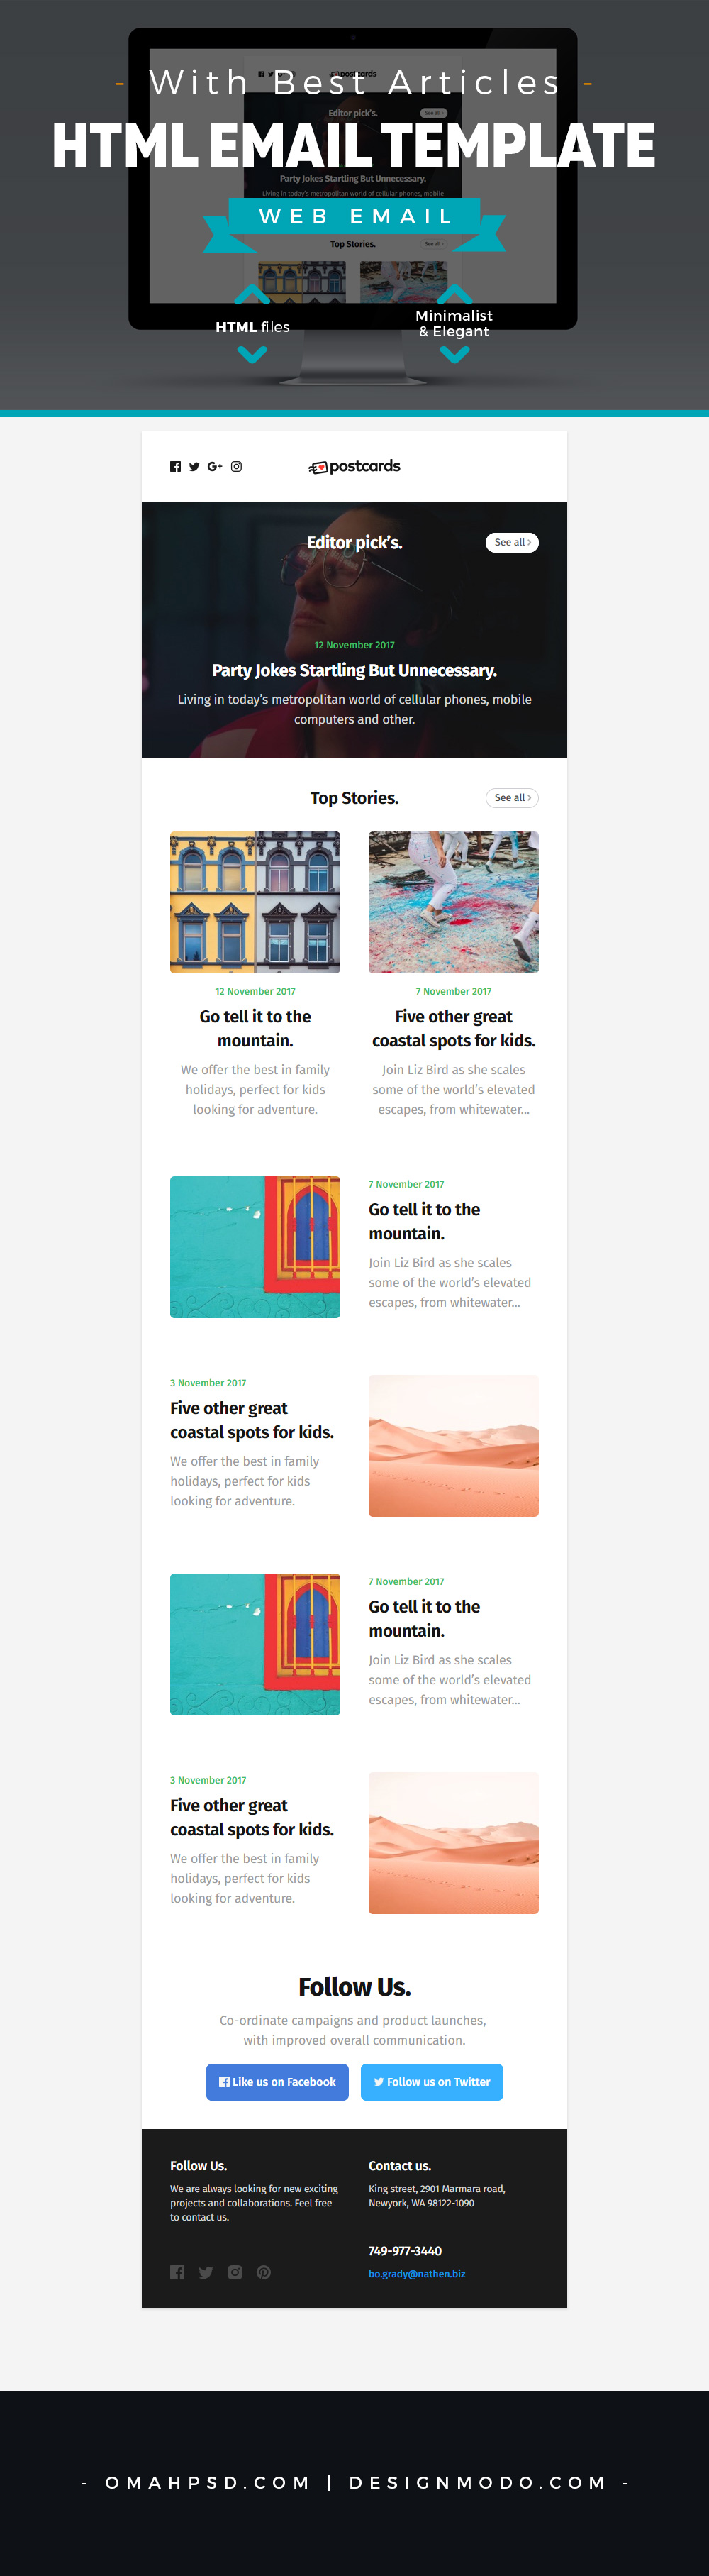 Free Email Template with Best Articles